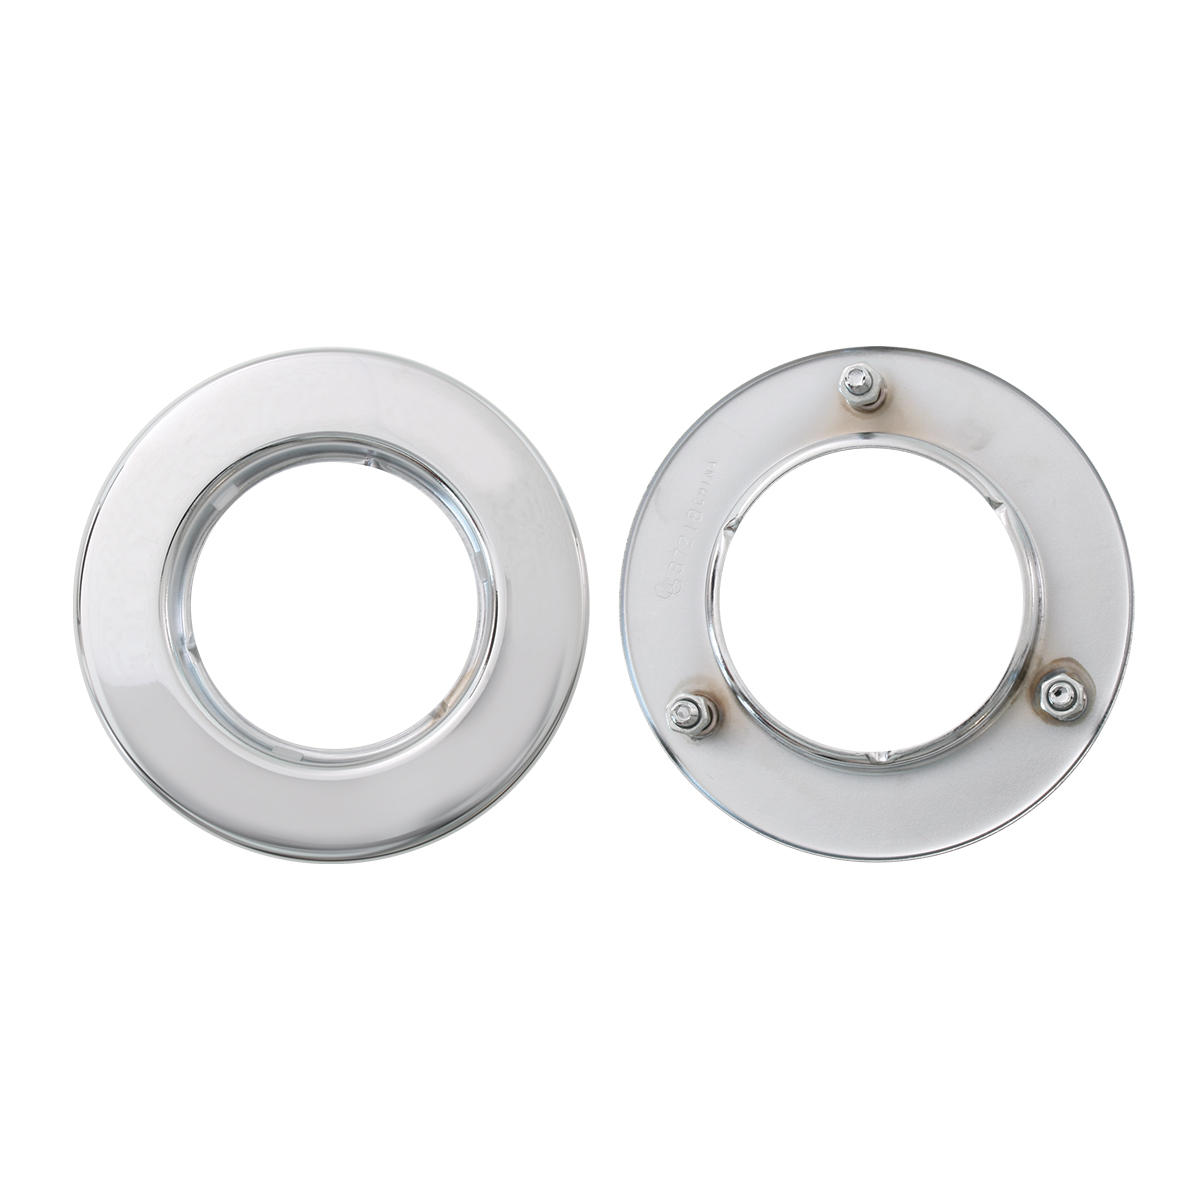 "Front & Back of Flange Mount Bezel with Hidden Studs for 2.5"" Round Light"